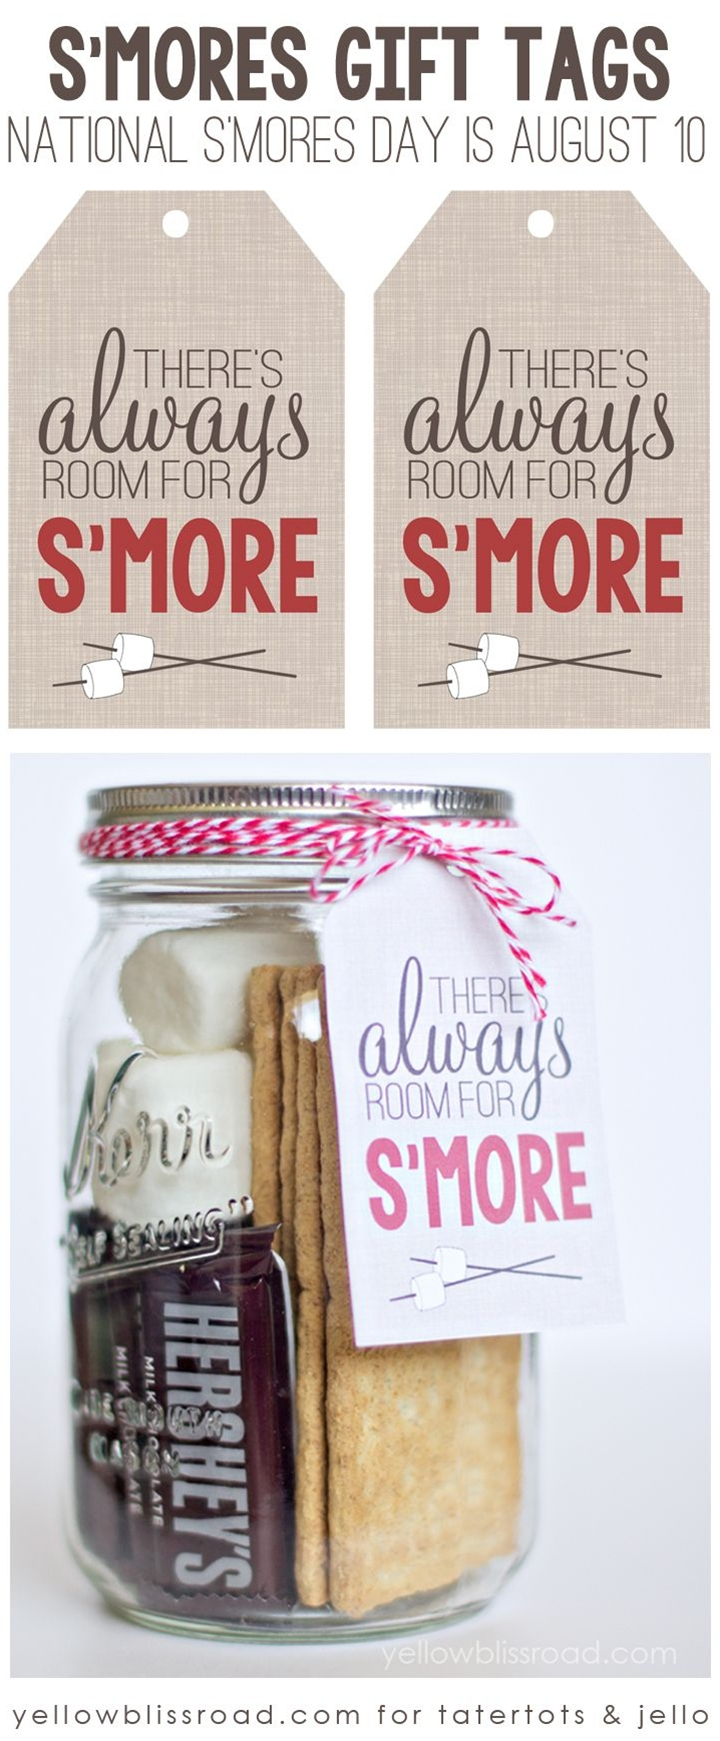 There's always room for s'more  - S'More day is Aug 10th - who knew???